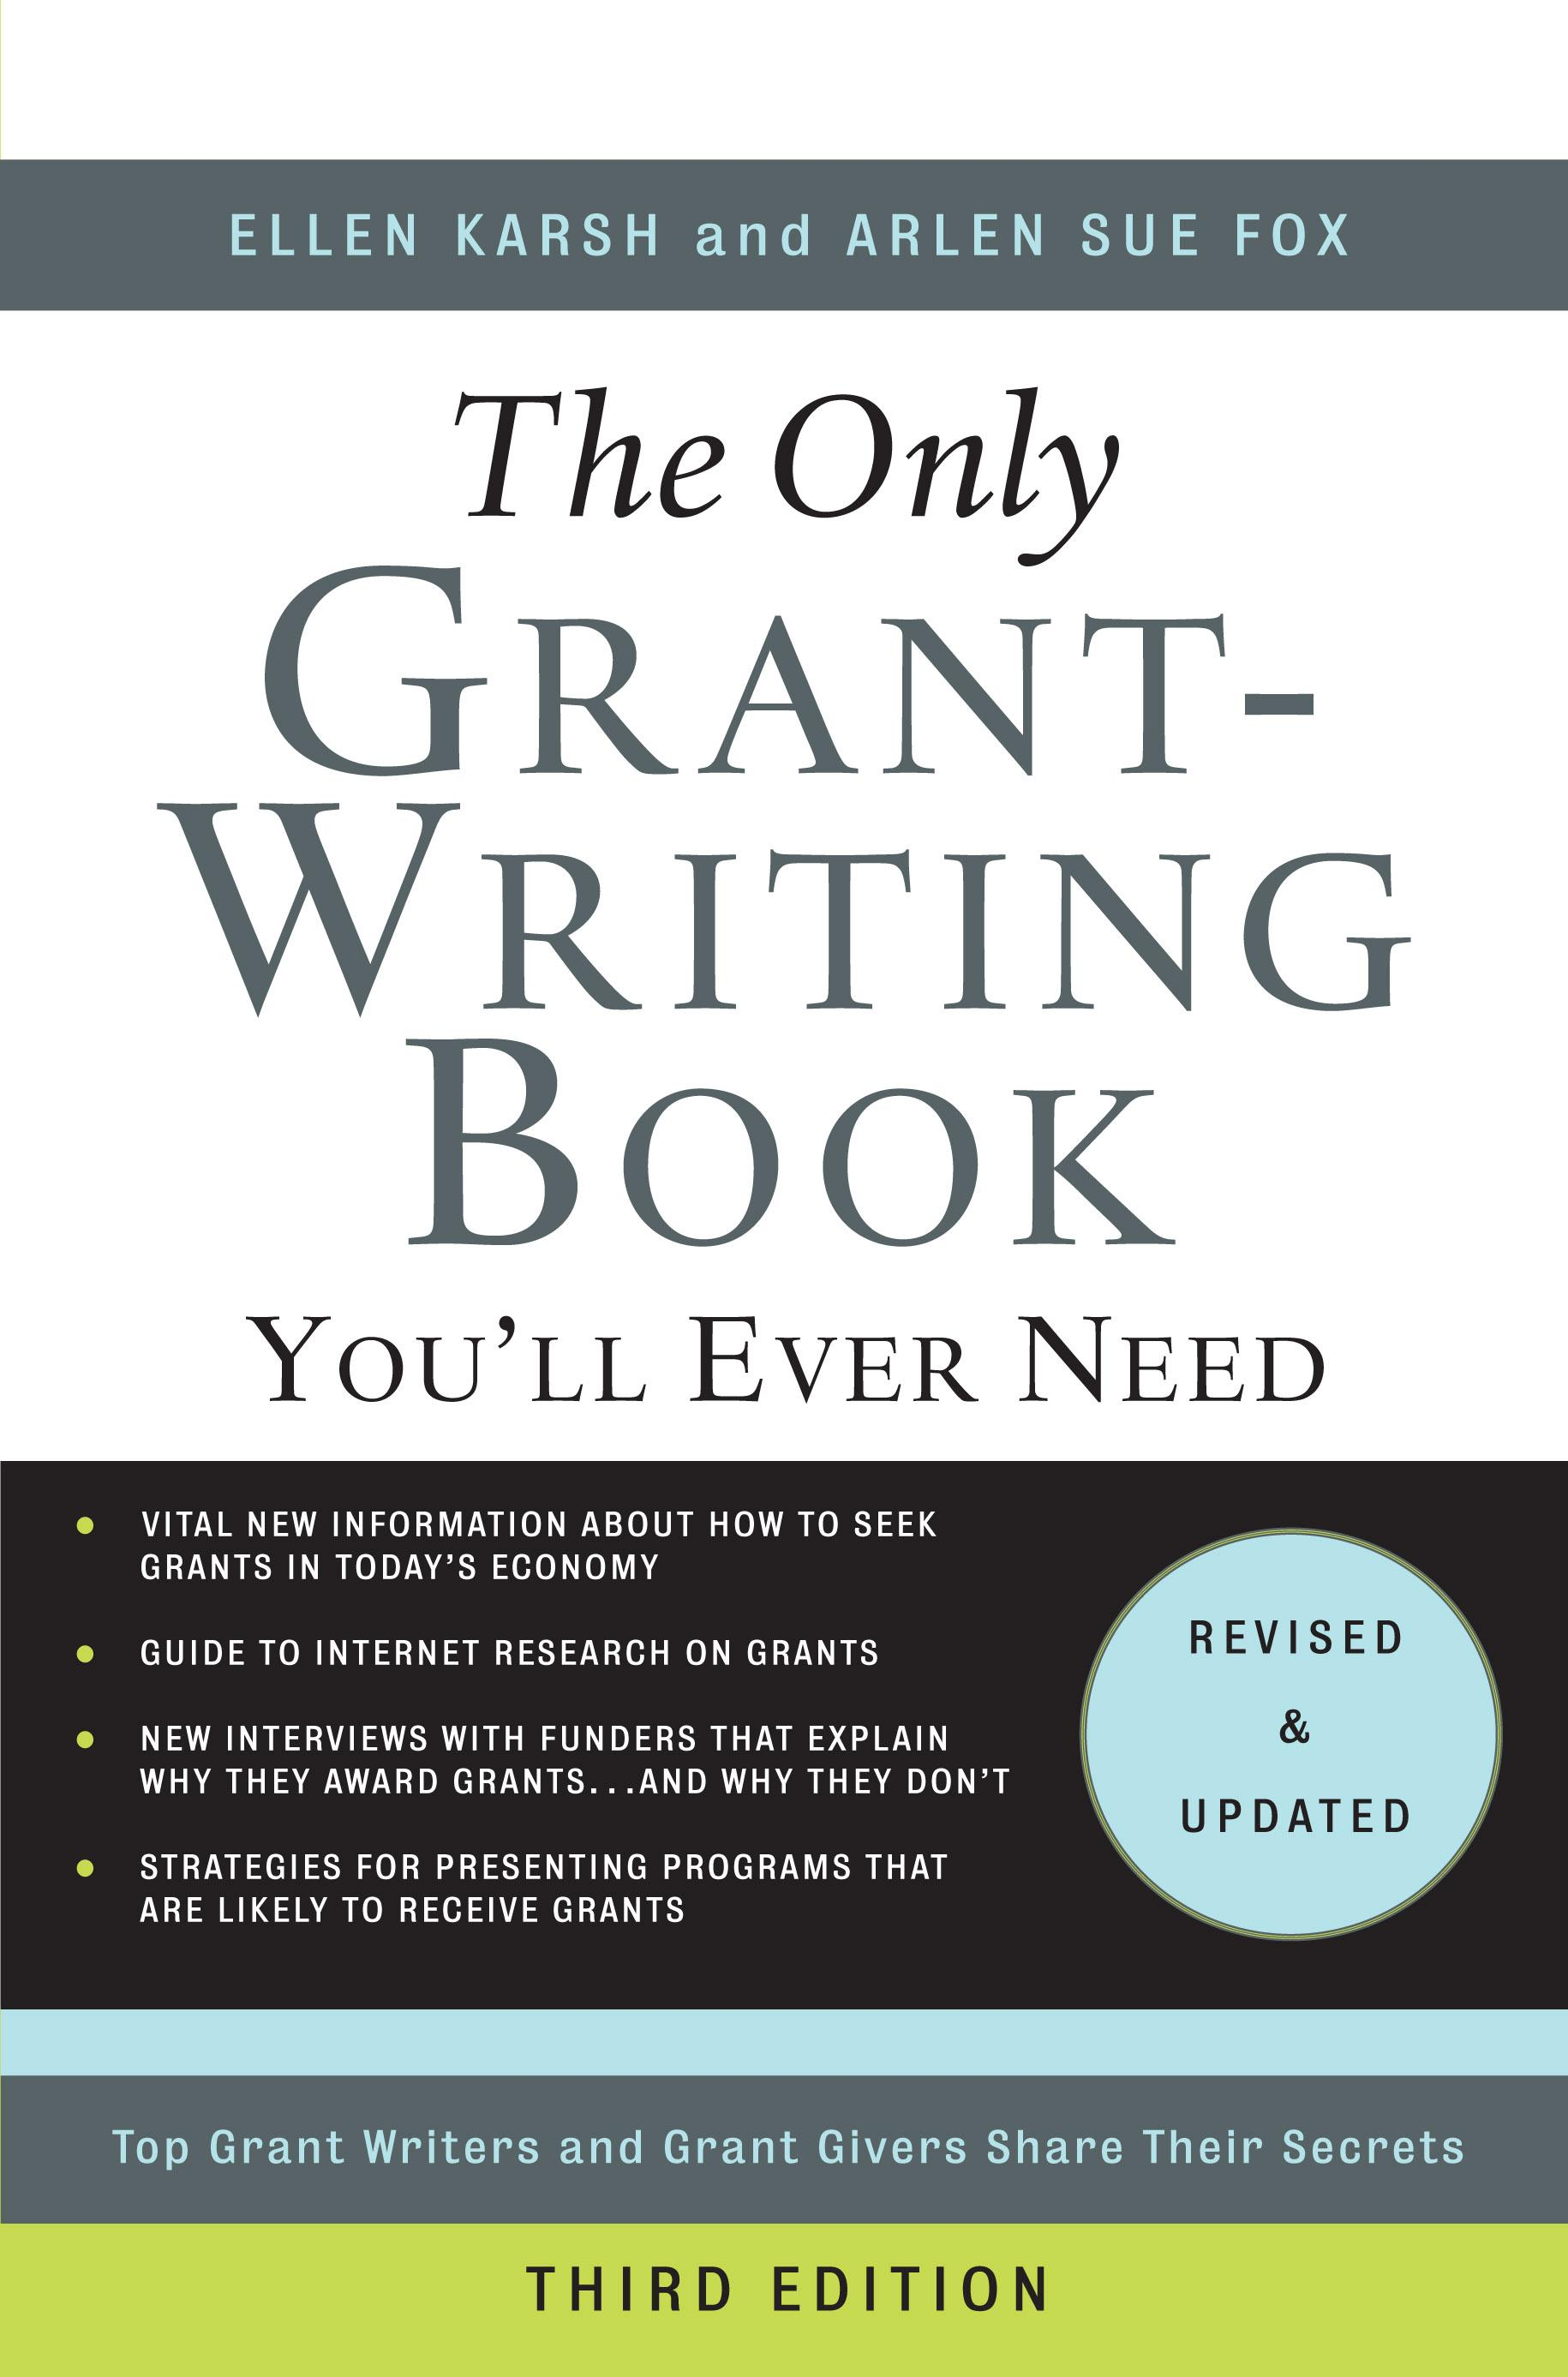 The Only Grant-Writing Book You'll Ever Need 3rd E: Top Grant Writers and Grant Givers Share Their Secrets EB9780786749034